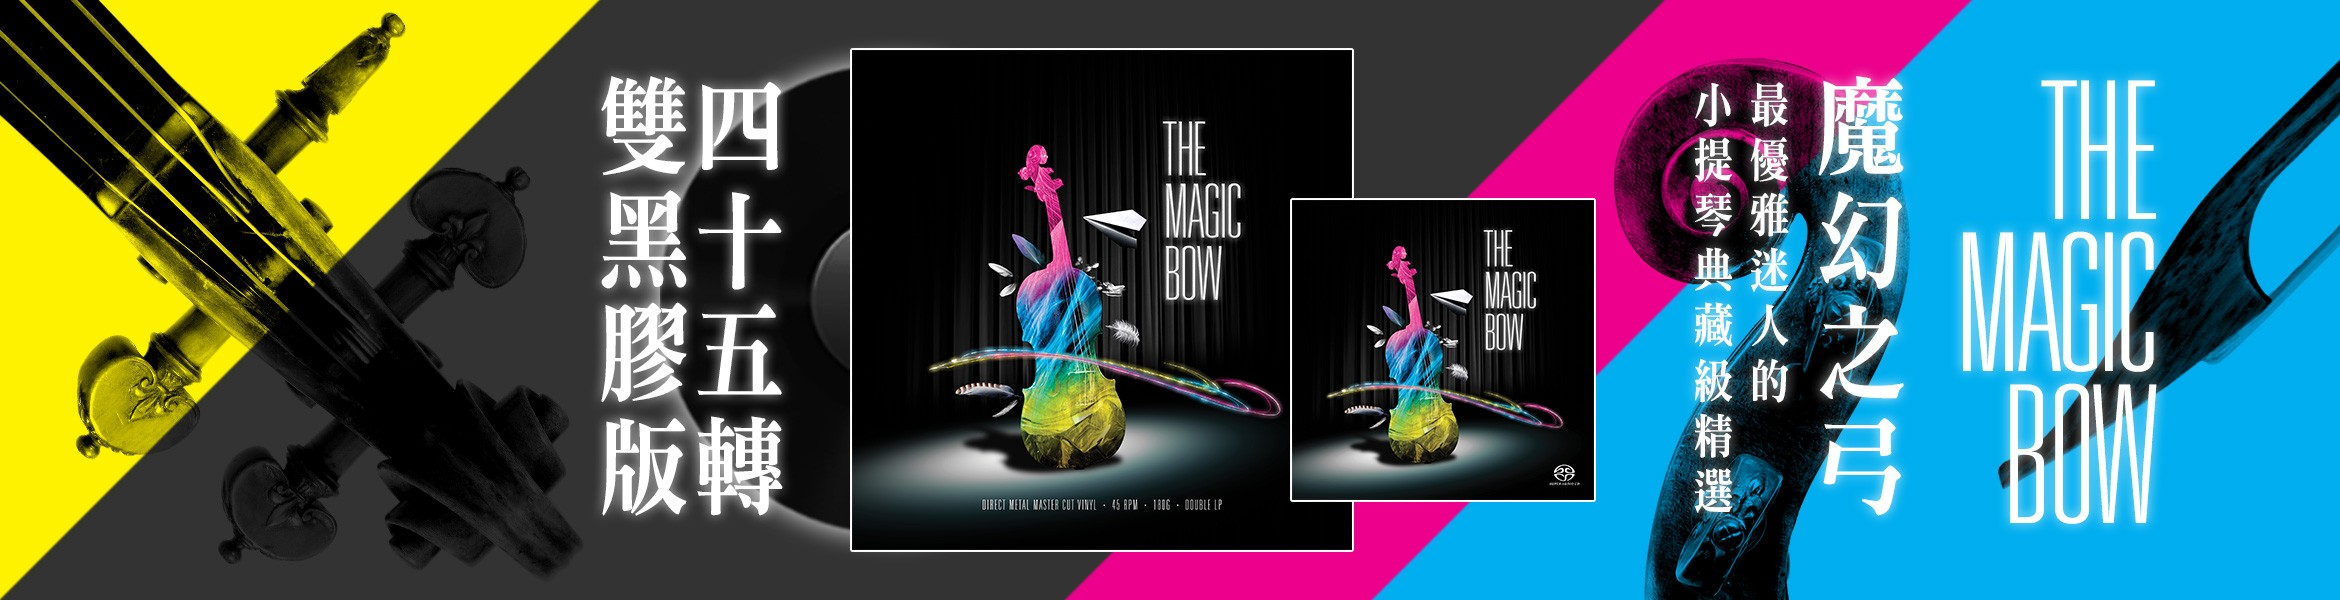 2020-08 Magic Bow LP